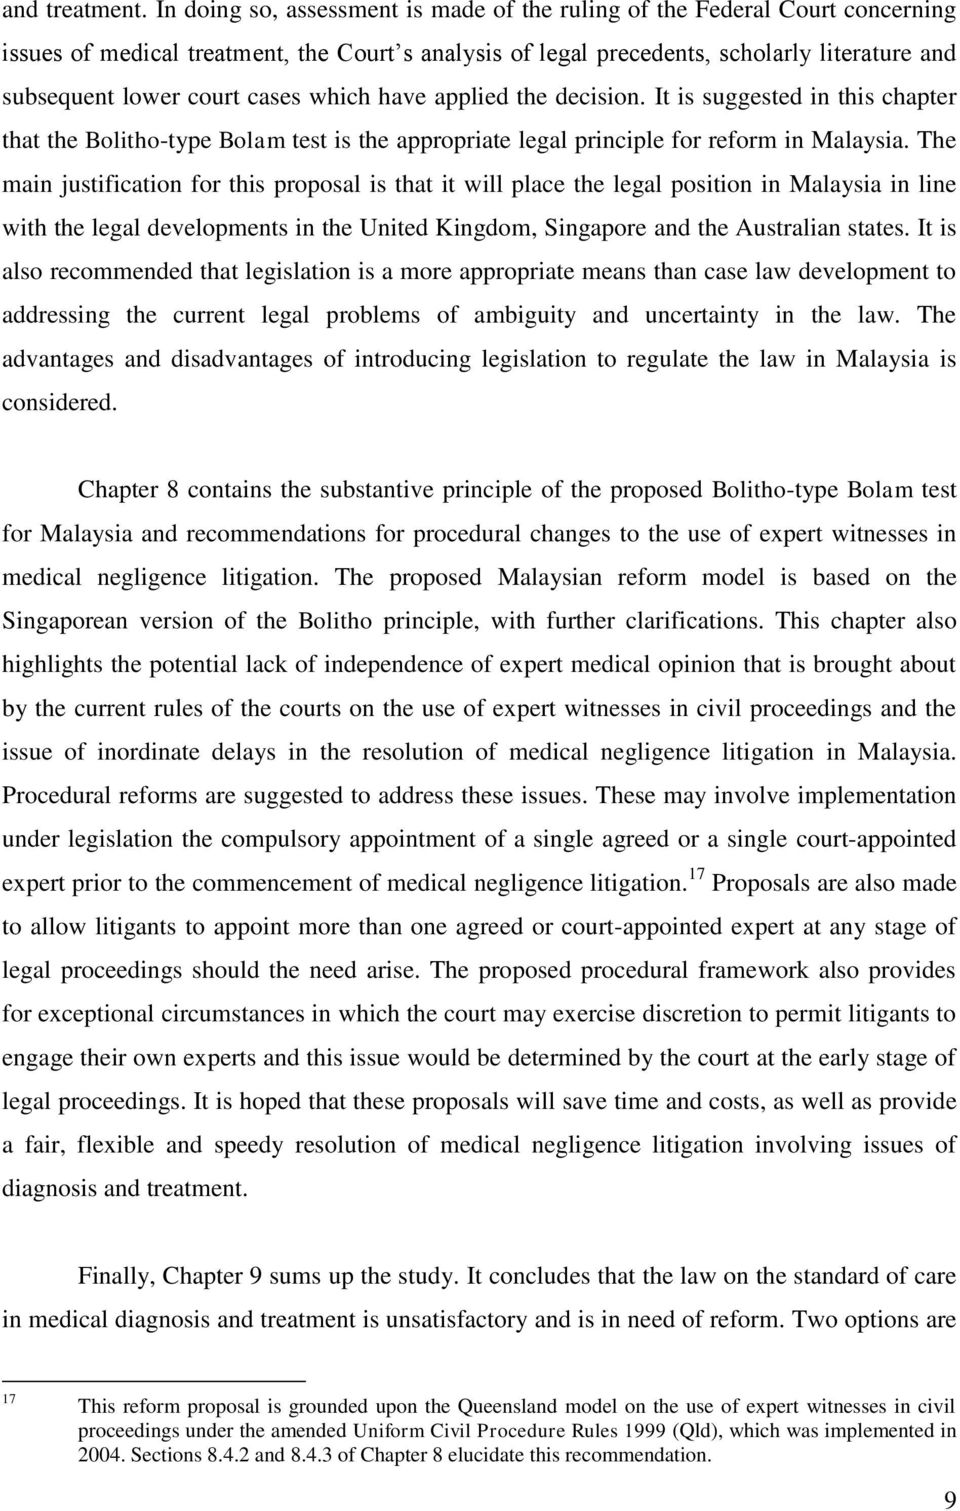 cases which have applied the decision. It is suggested in this chapter that the Bolitho-type Bolam test is the appropriate legal principle for reform in Malaysia.